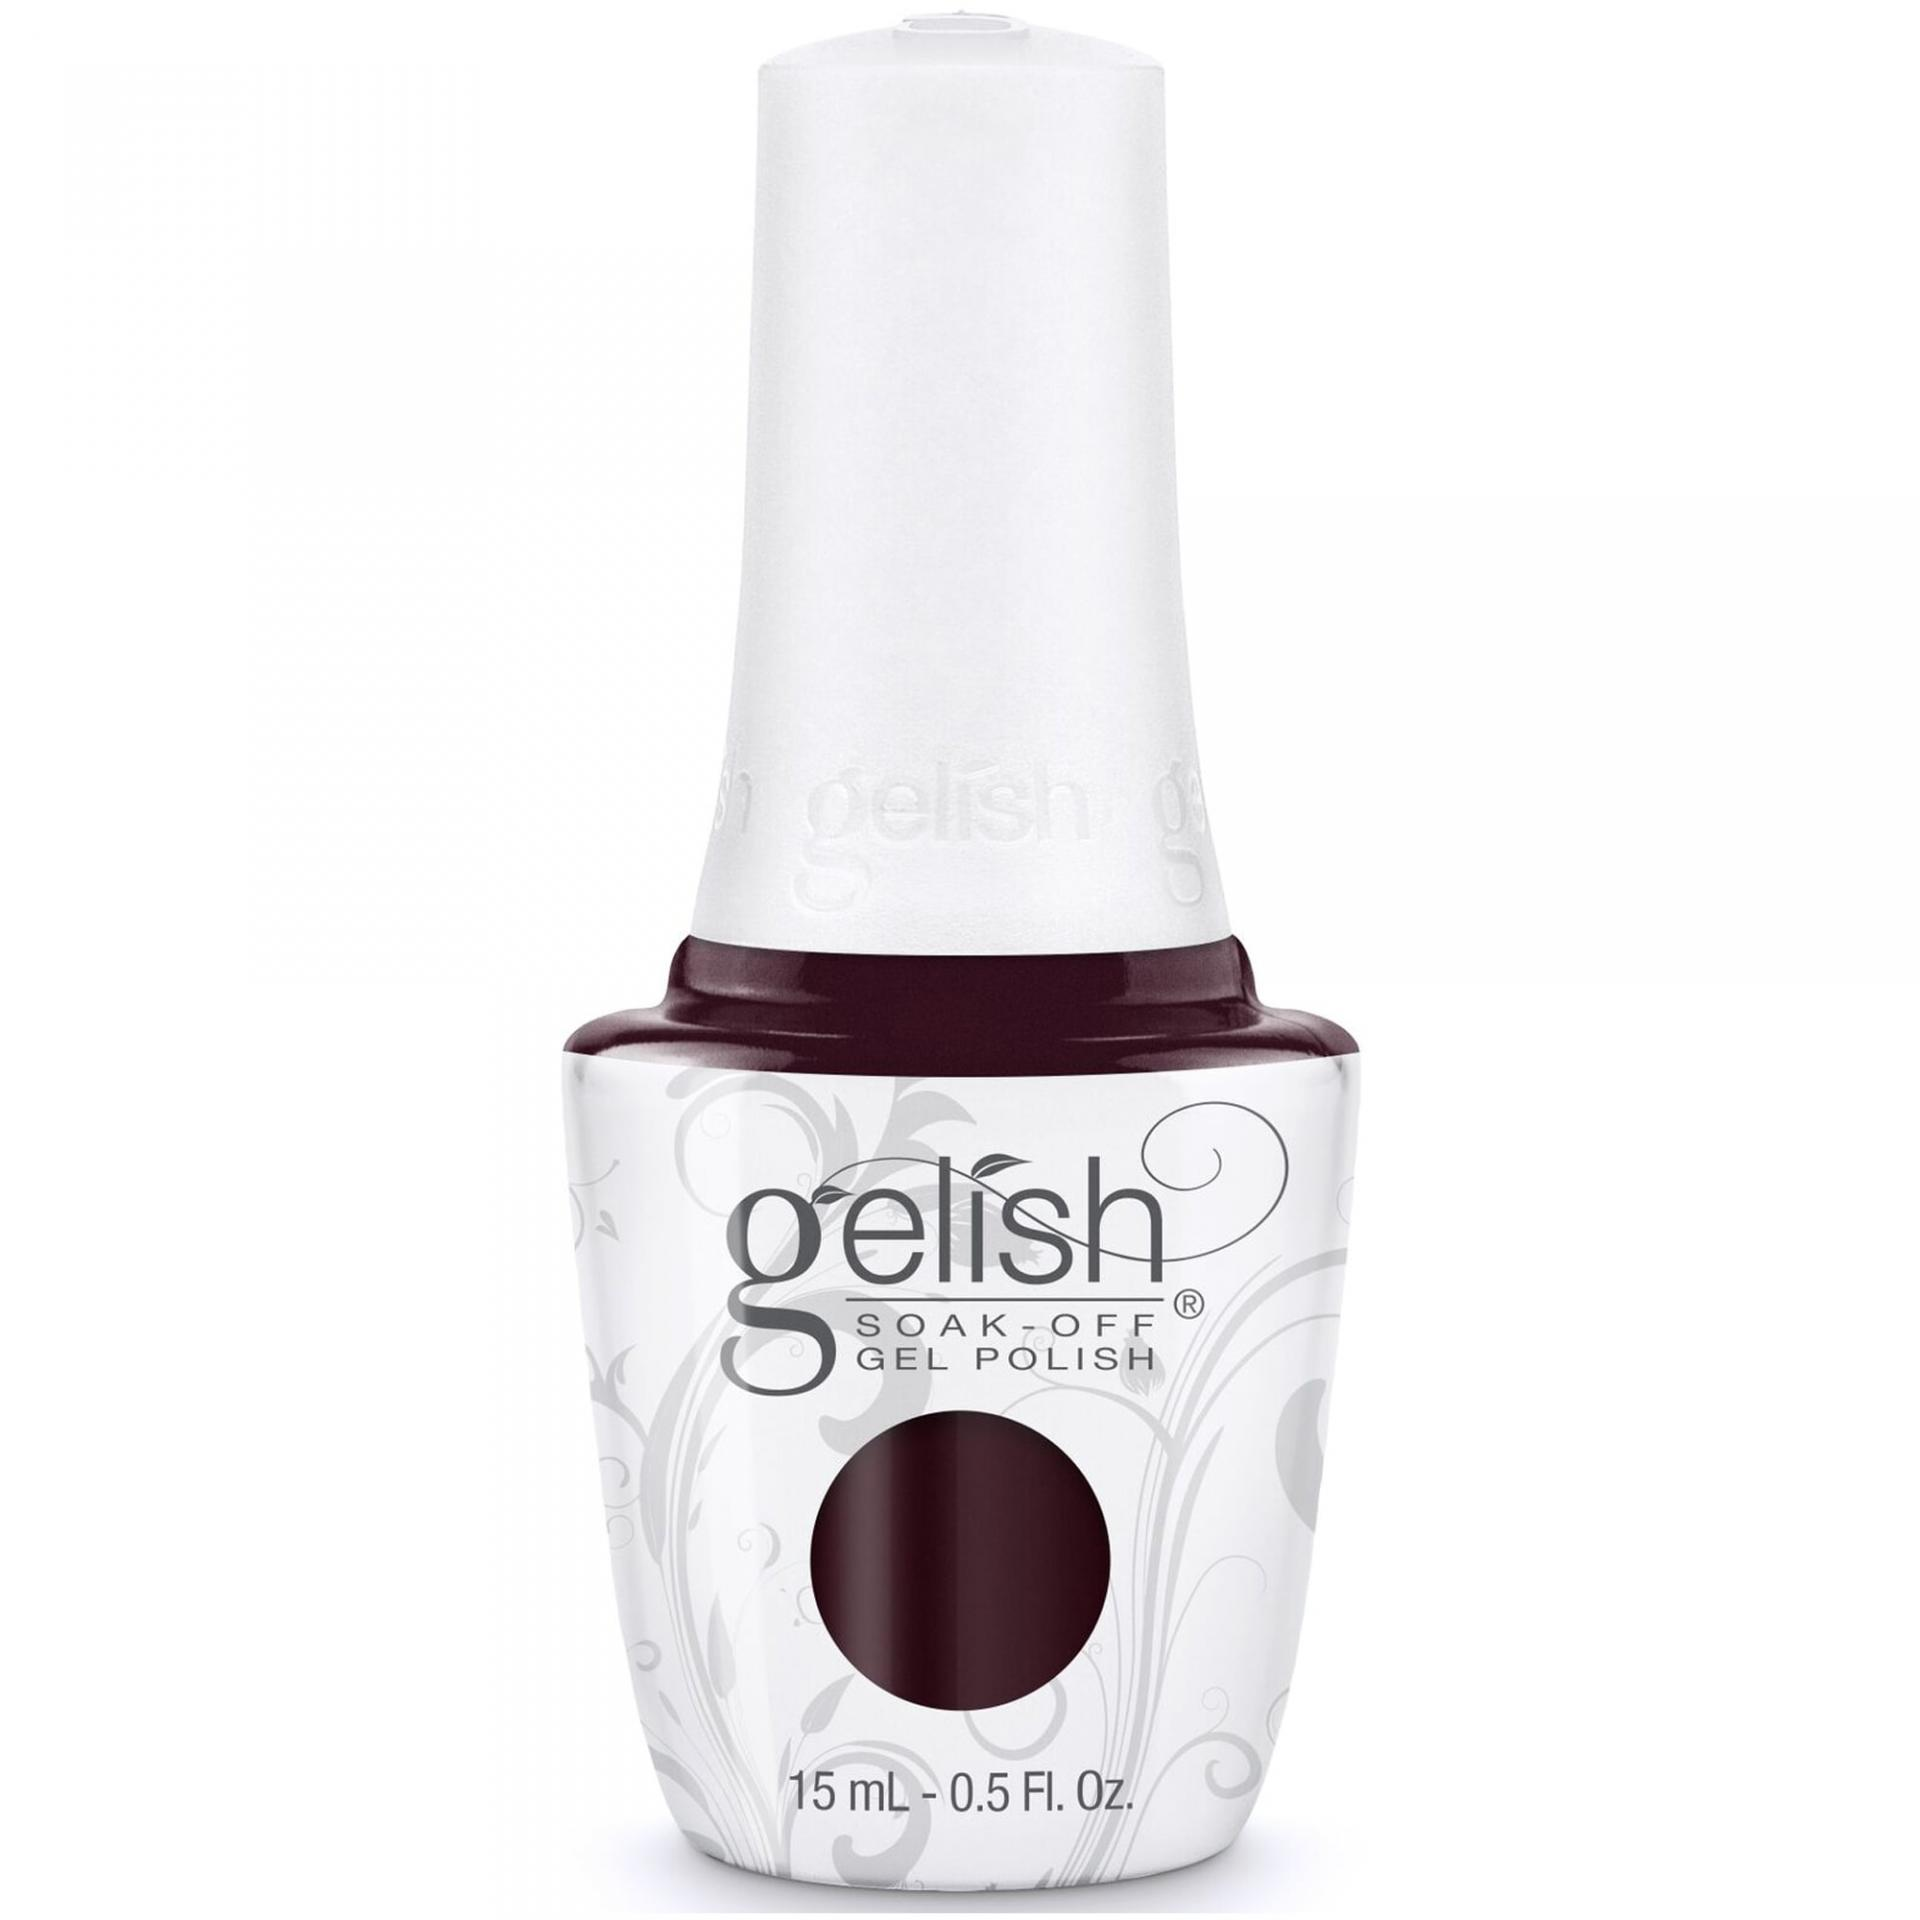 Gelish lets kiss and warm up 2